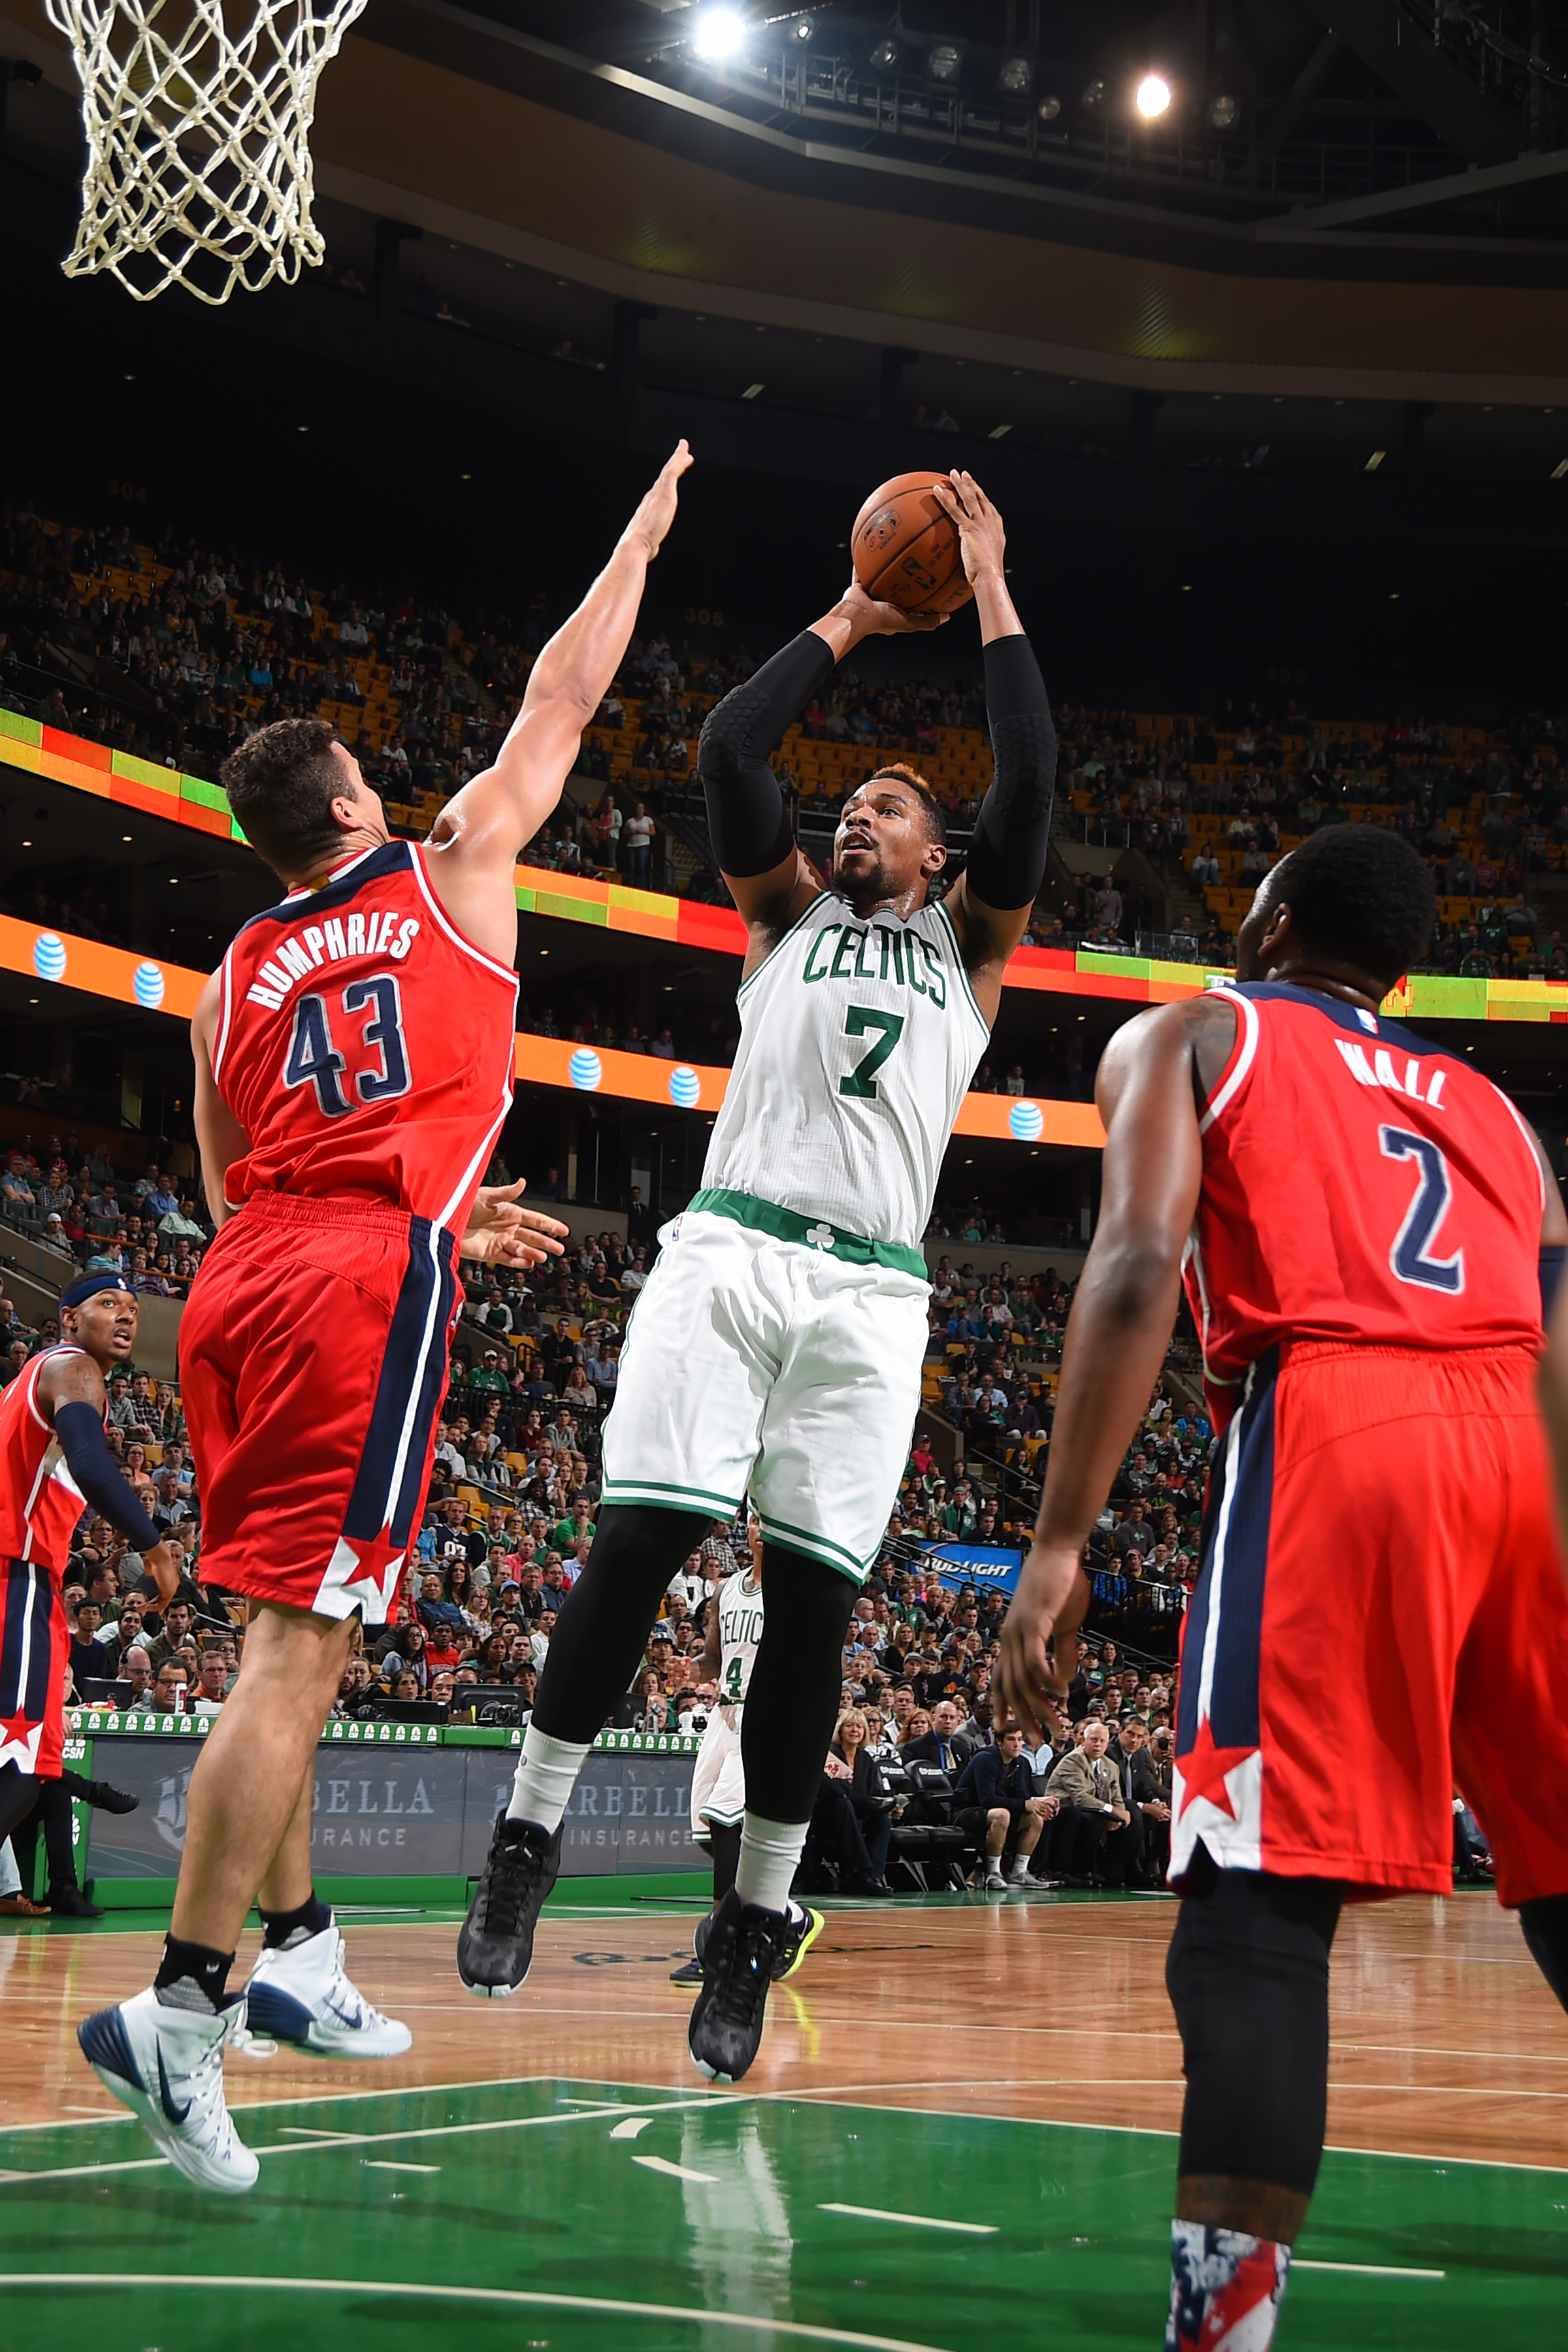 BOSTON, MA - NOVEMBER 6:  Jared Sullinger #7 of the Boston Celtics shoots the ball against the Washington Wizards on November 6, 2015 at the TD Garden in Boston, Massachusetts.  (Photo by Brian Babineau/NBAE via Getty Images)